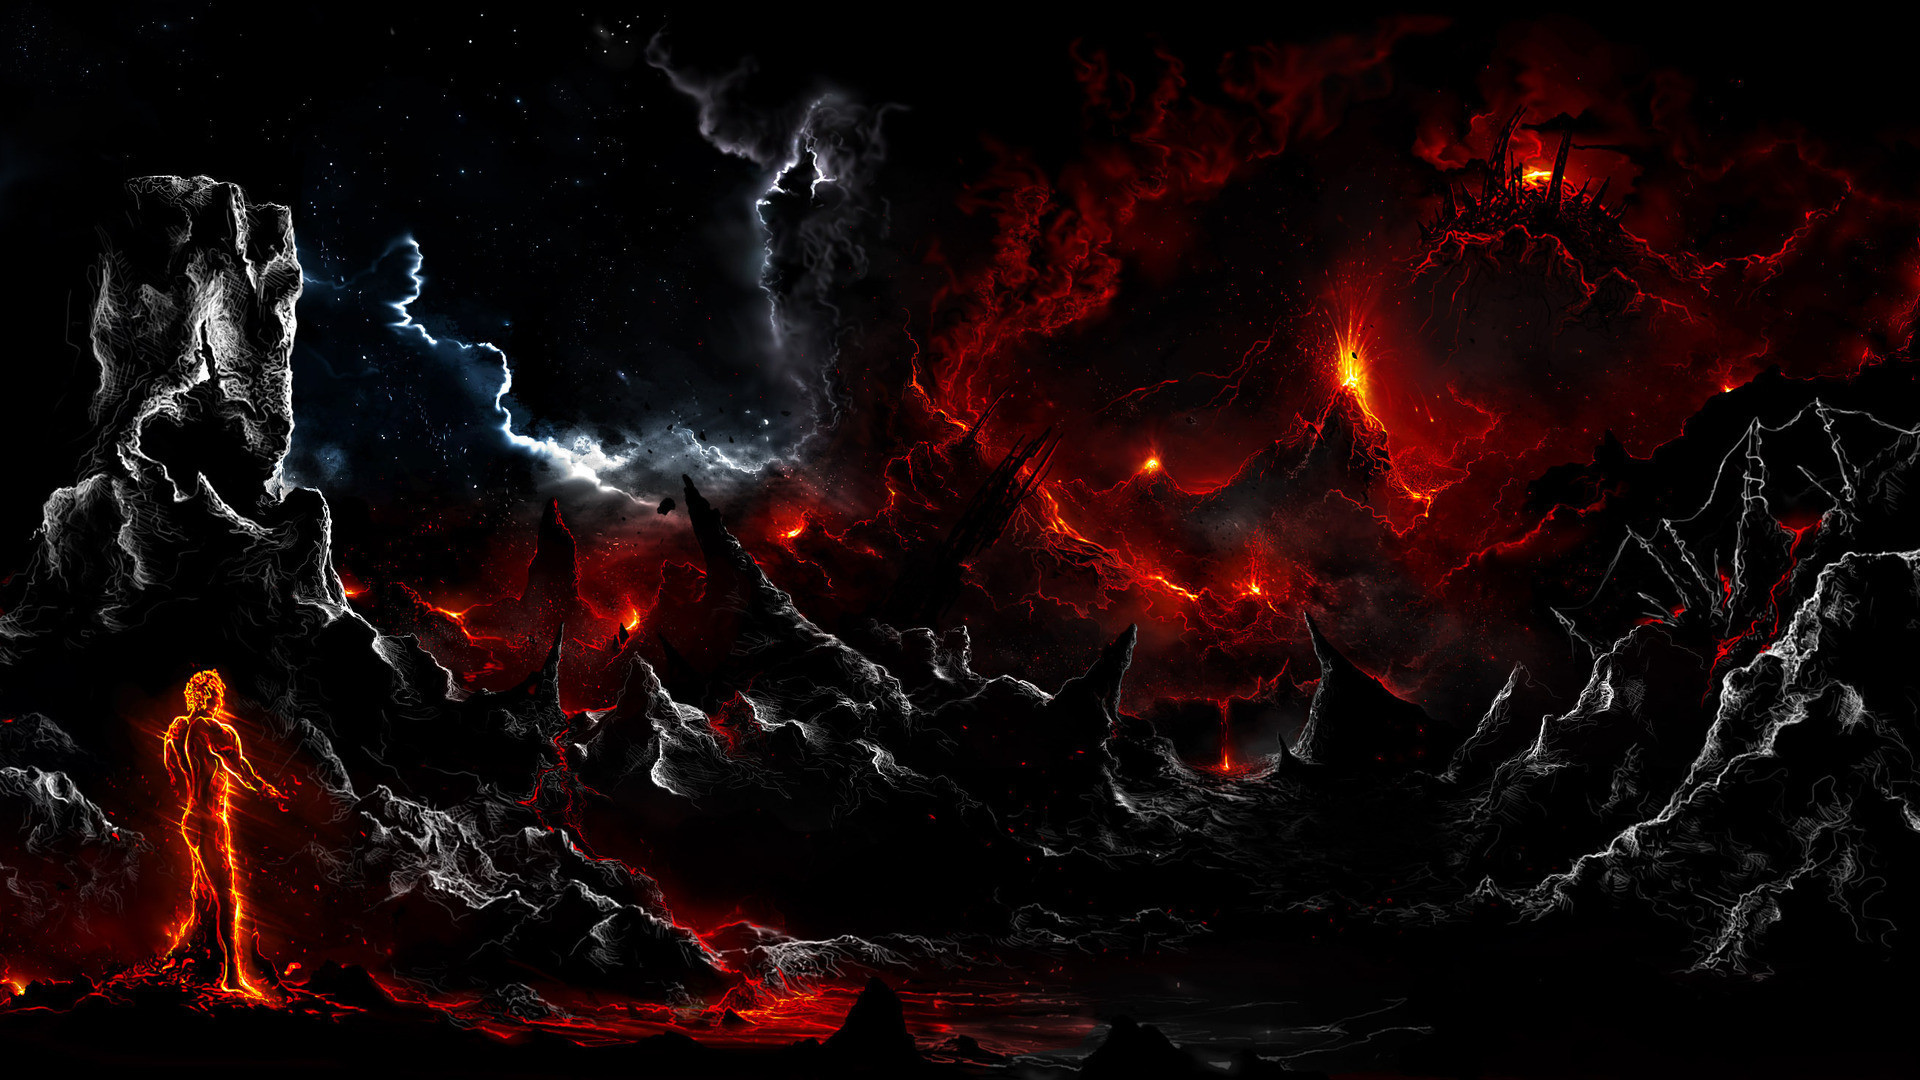 Res: 1920x1080, Volcanic Lightning High Resolution Wallpapers